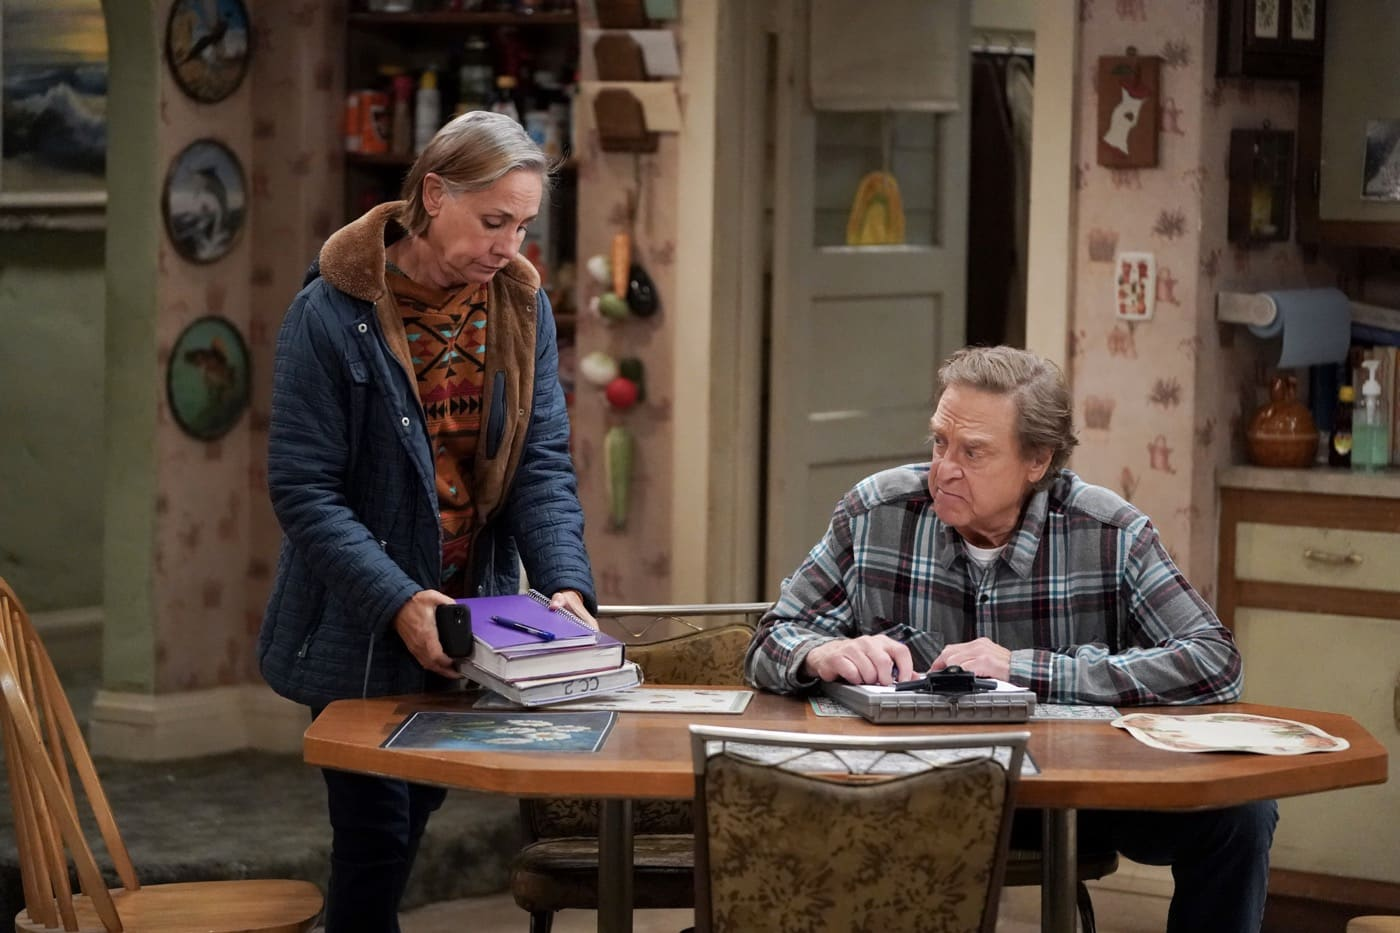 THE CONNERS Season 3 Episode 10 Who Are Bosses, Boats and Eckart Tolle LAURIE METCALF, JOHN GOODMAN